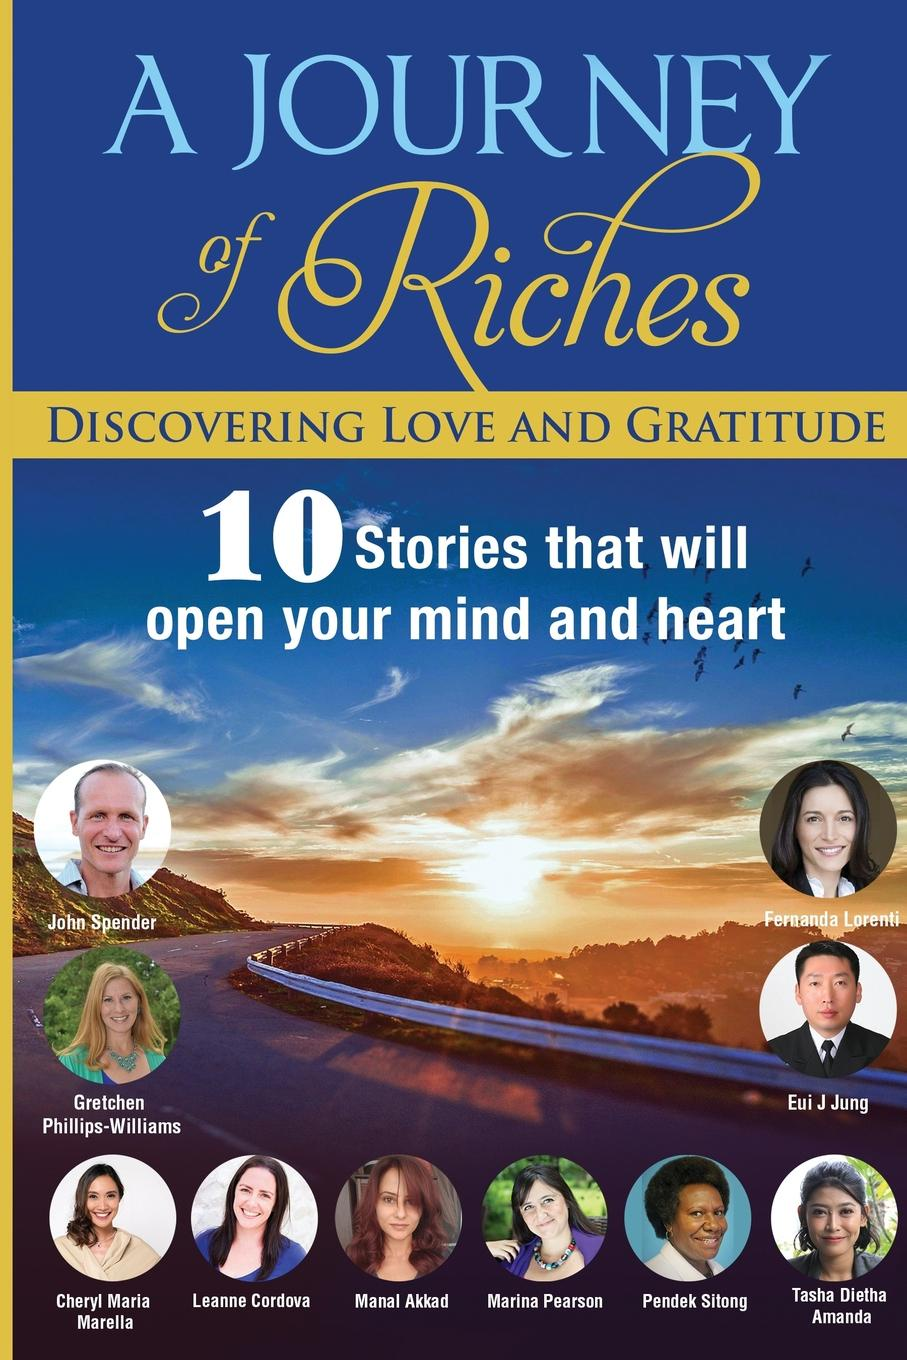 John Spender, Fernanda Lorenti, Phillips-Williams Gretchen Discovering Love and Gratitude. A Journey Of Riches kevin r foley iwawo discovering and loving your life journey